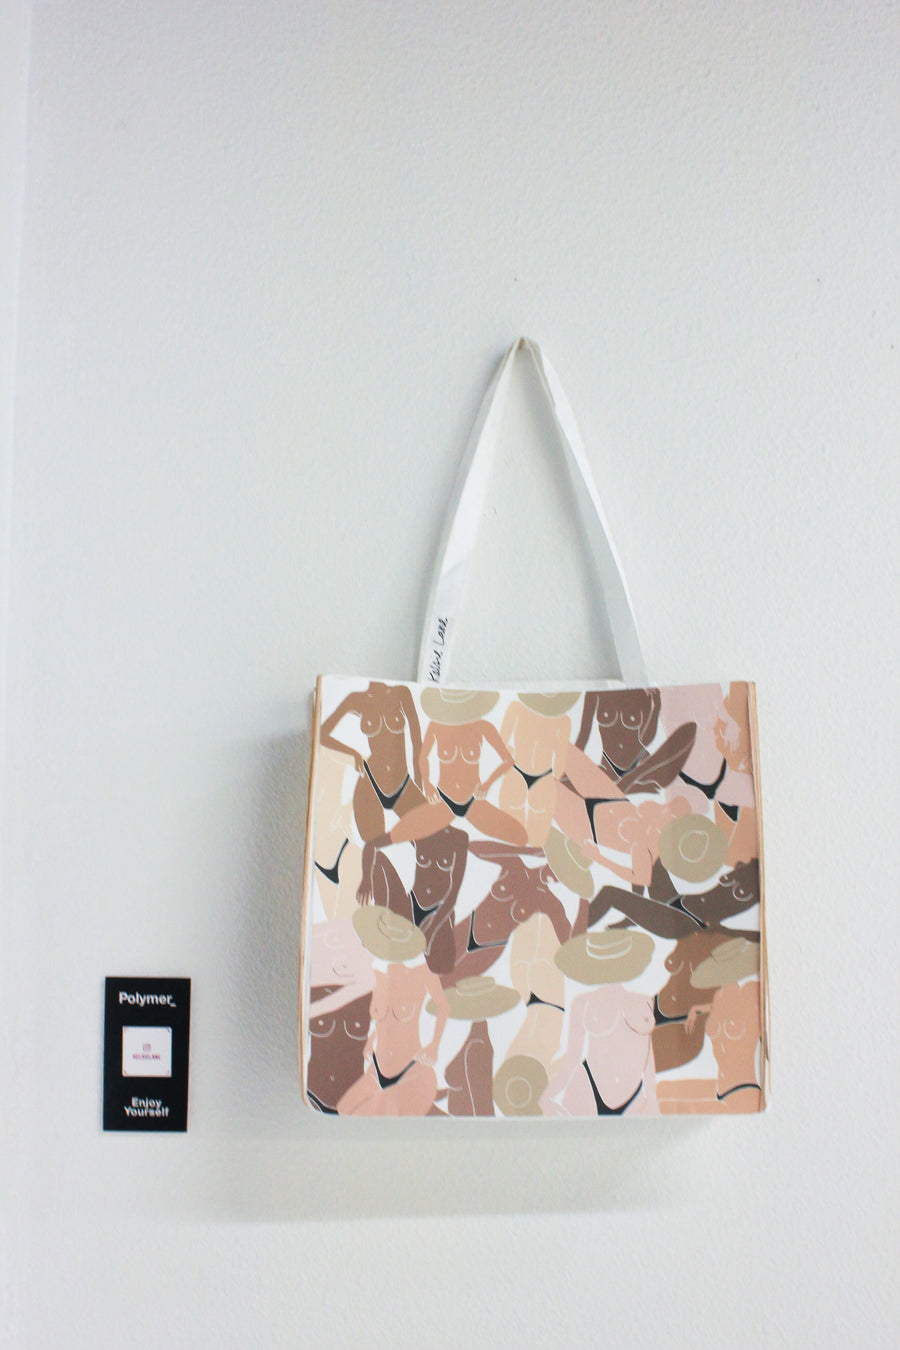 Polymer_ Enjoy Yourself Art Tote by Kelsie Van Wuychuyse